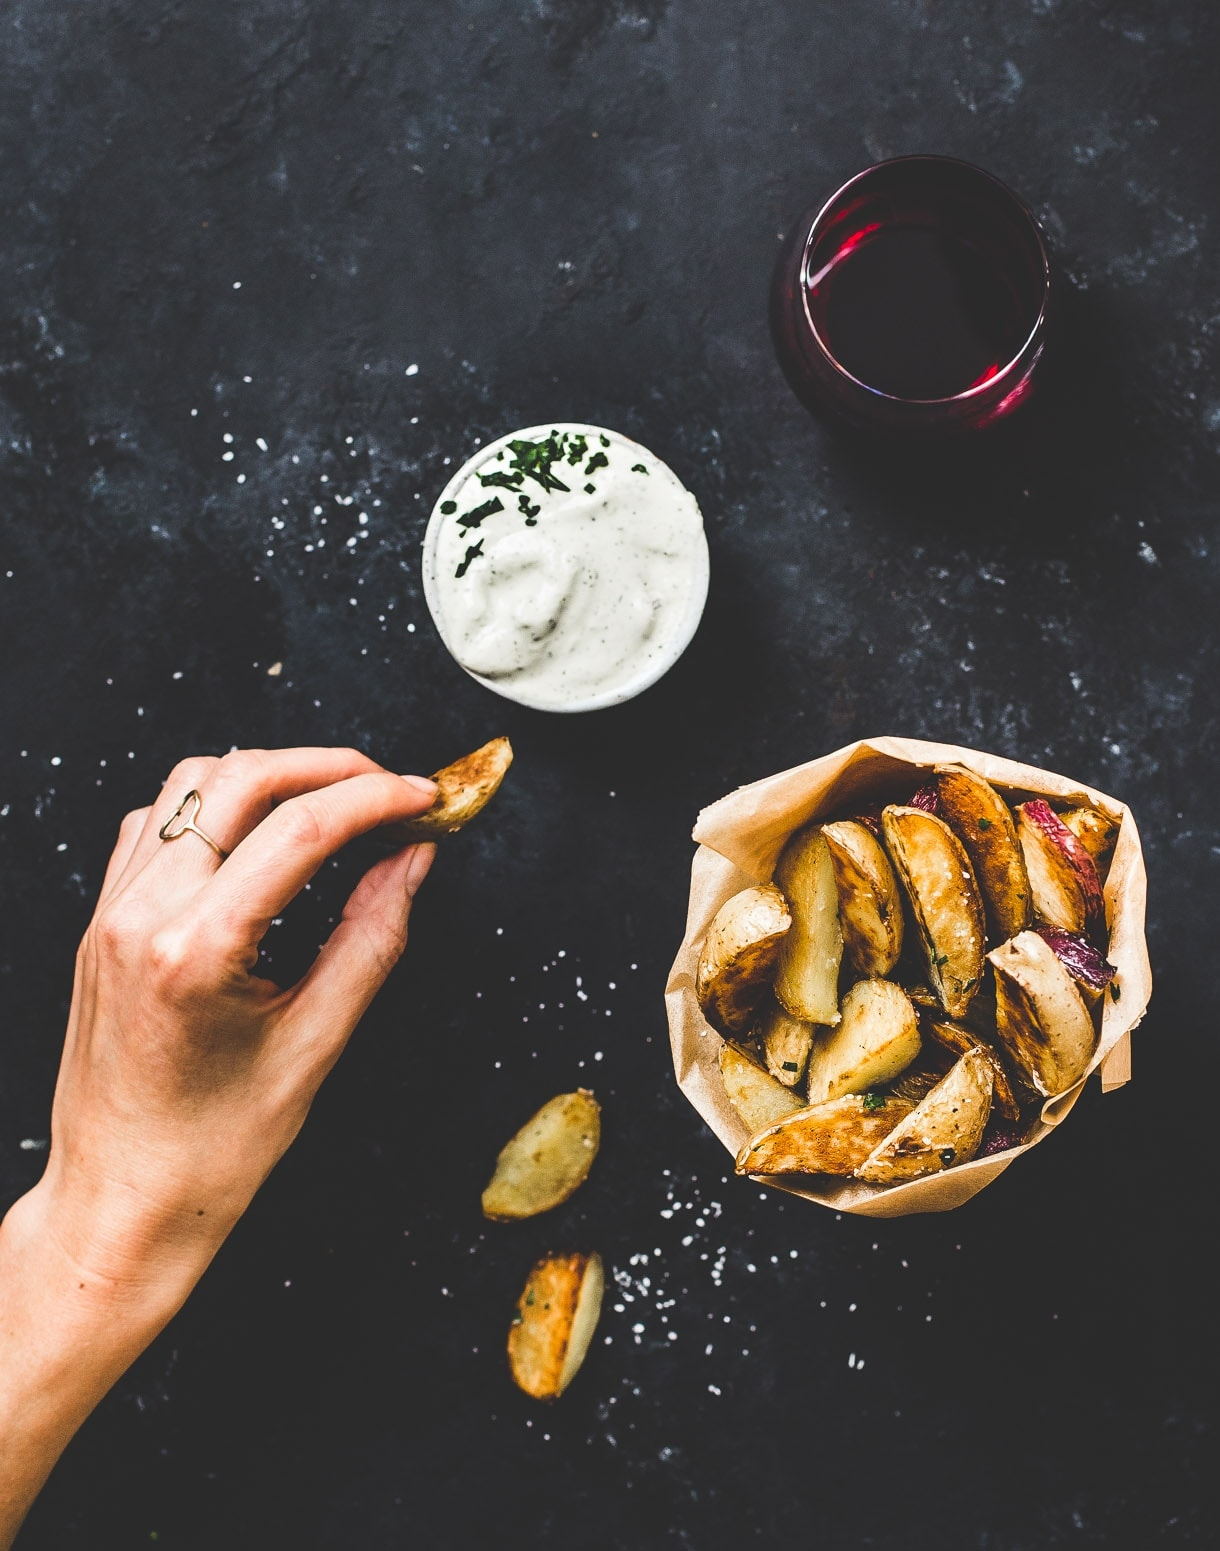 Extra Crispy Potato Wedges without a fryer, Made For Dipping